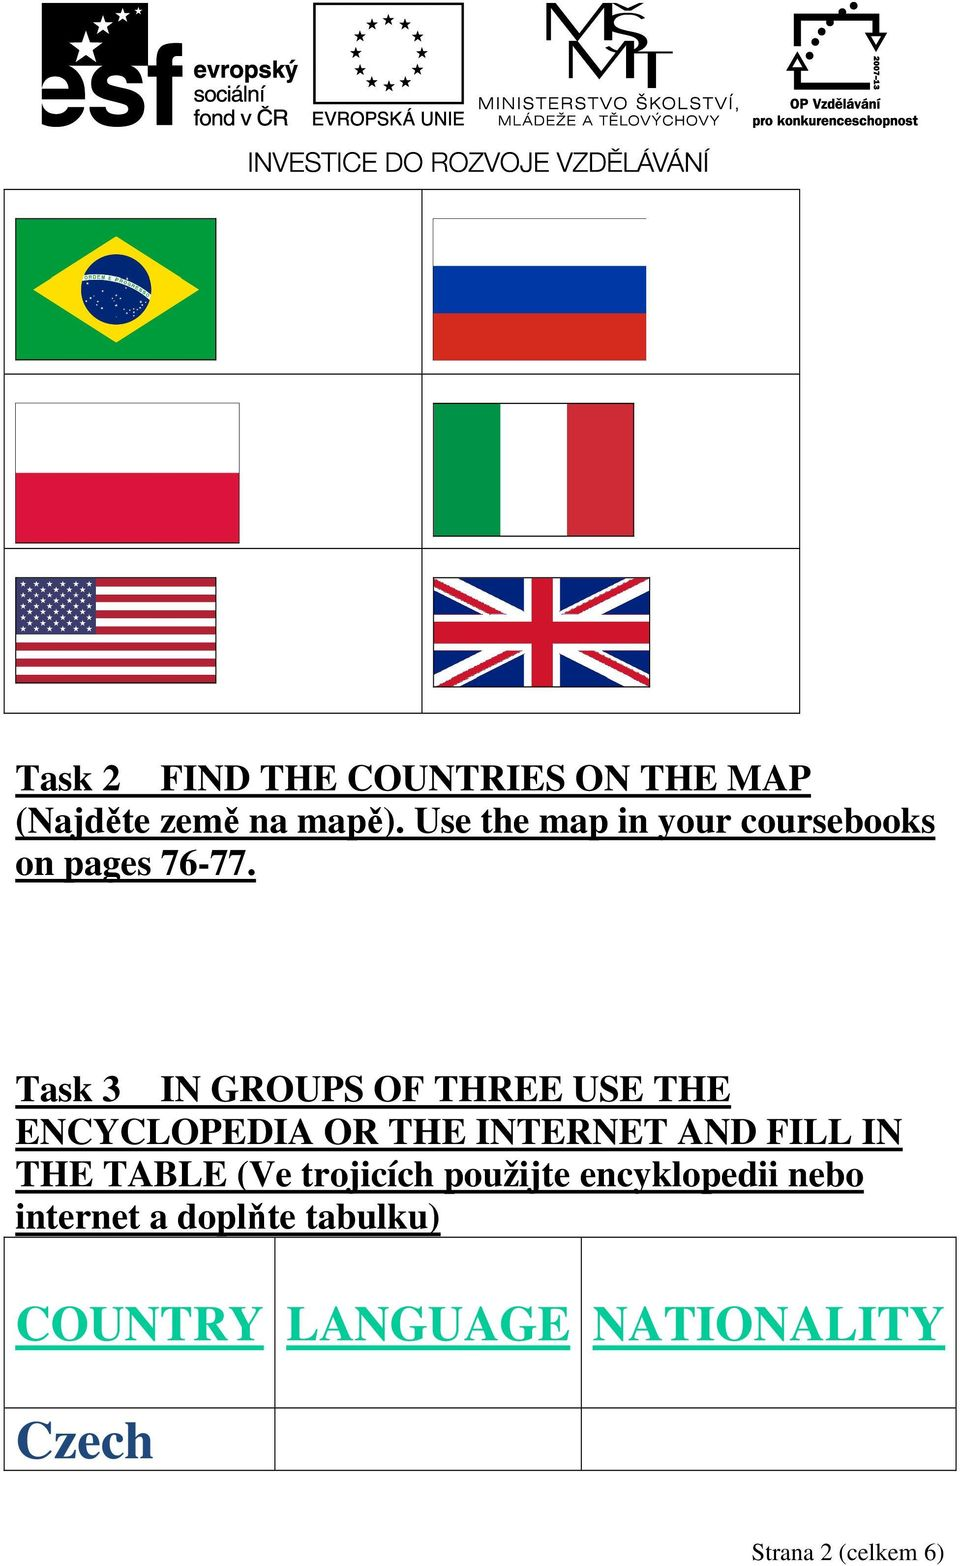 Task 3 IN GROUPS OF THREE USE THE ENCYCLOPEDIA OR THE INTERNET AND FILL IN THE